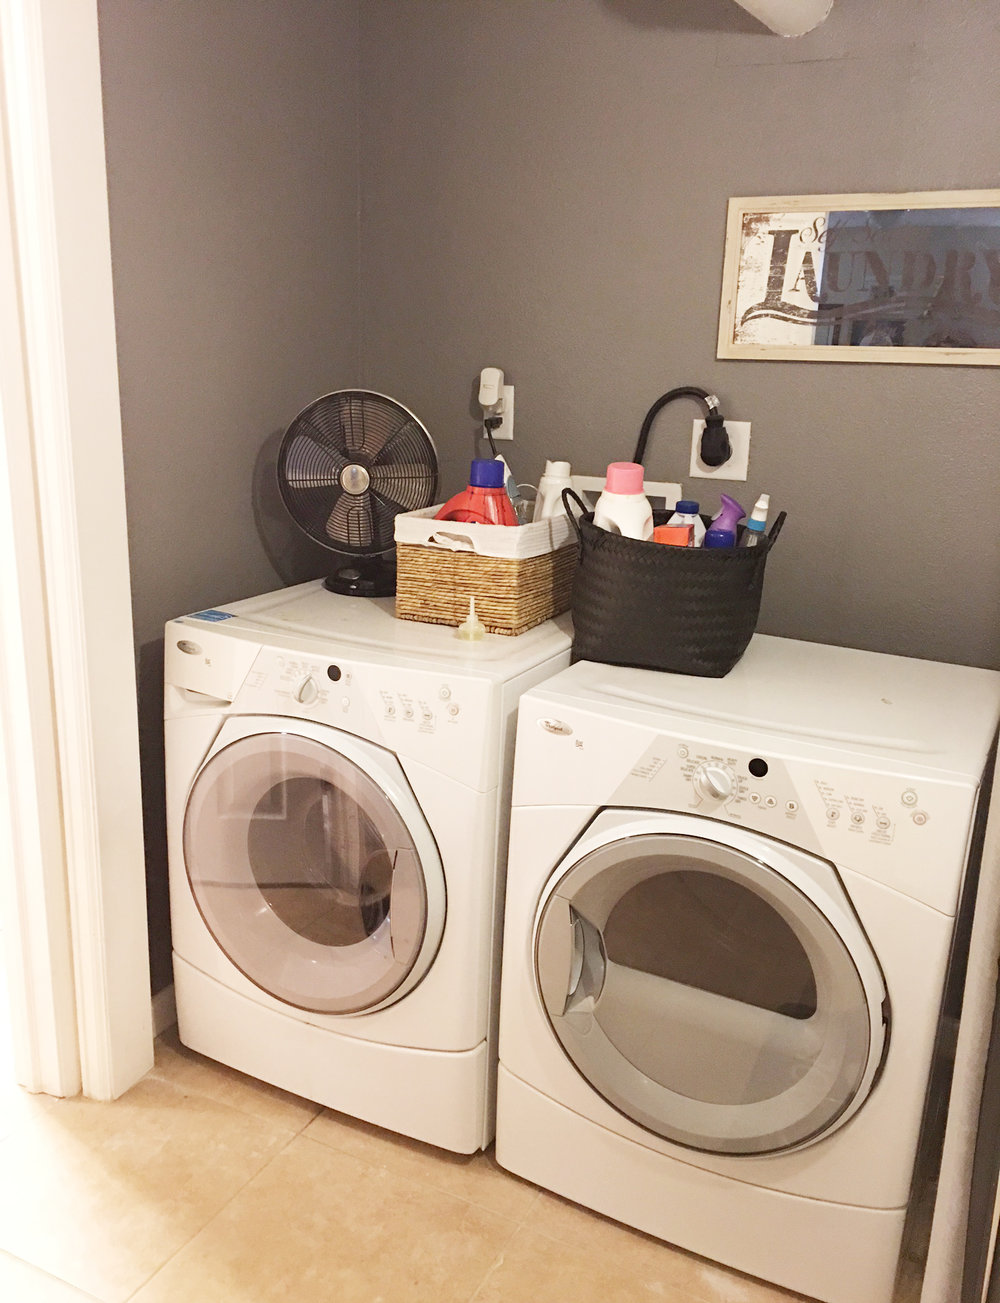 Laundry room makeover the plans rook design co my first major plan is to install a butcher block counter top not only will this save socks from disappearing on the side of the machines but it will give solutioingenieria Choice Image